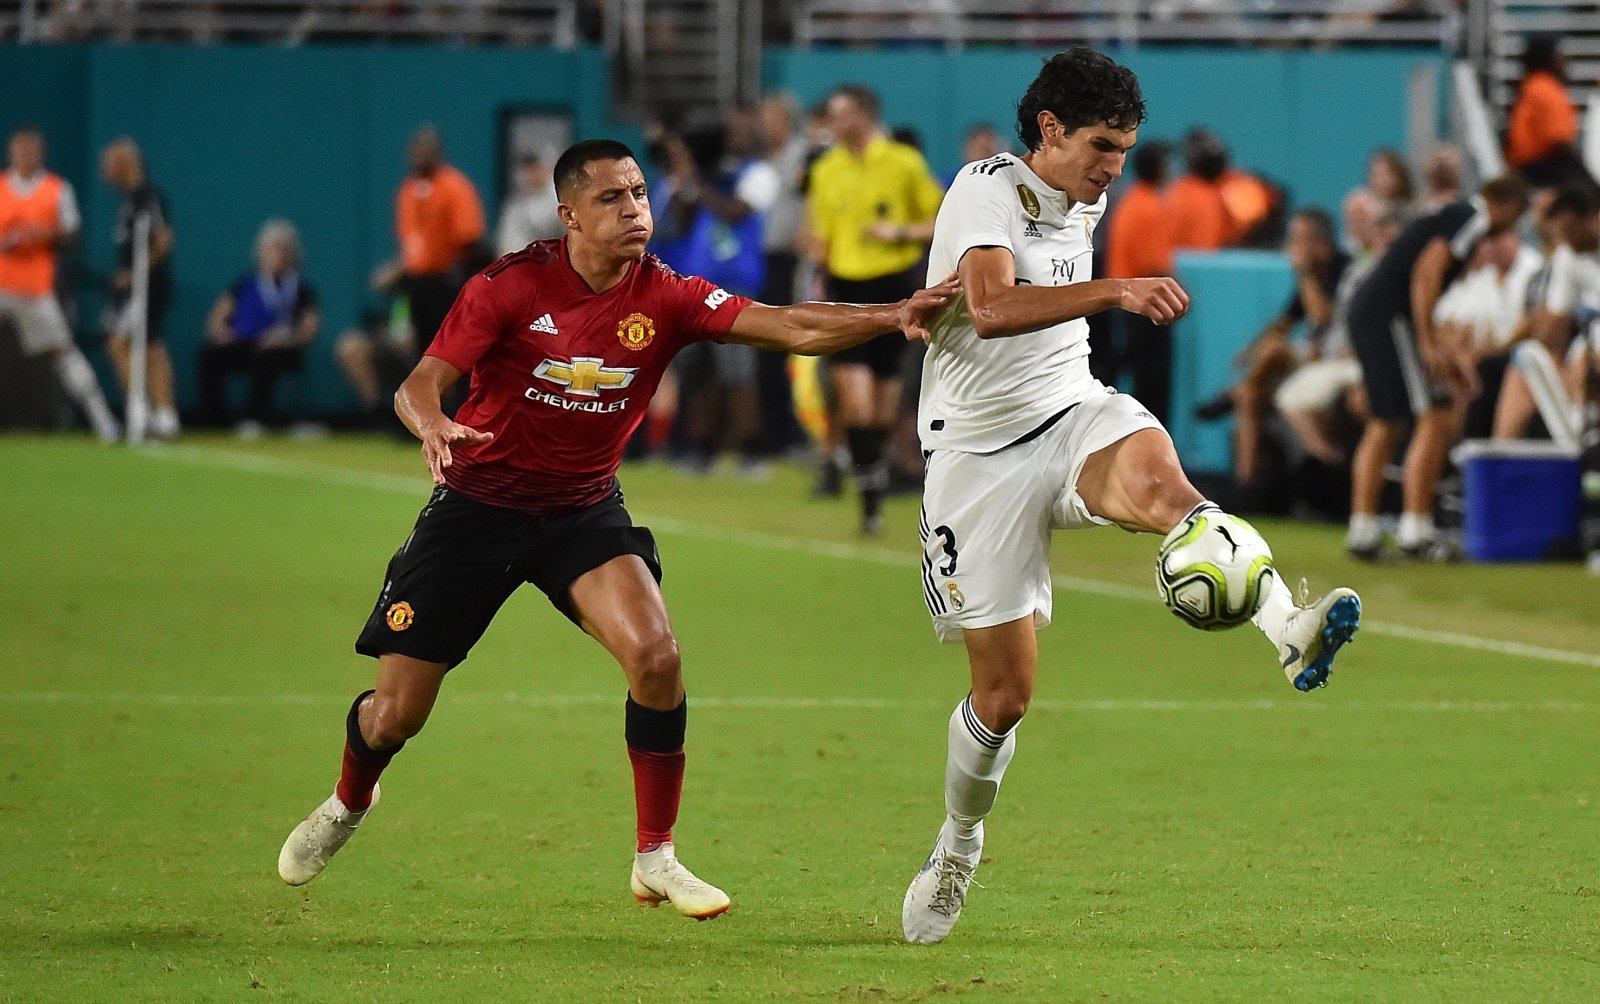 Liverpool must sign Jesus Vallejo with the future in mind